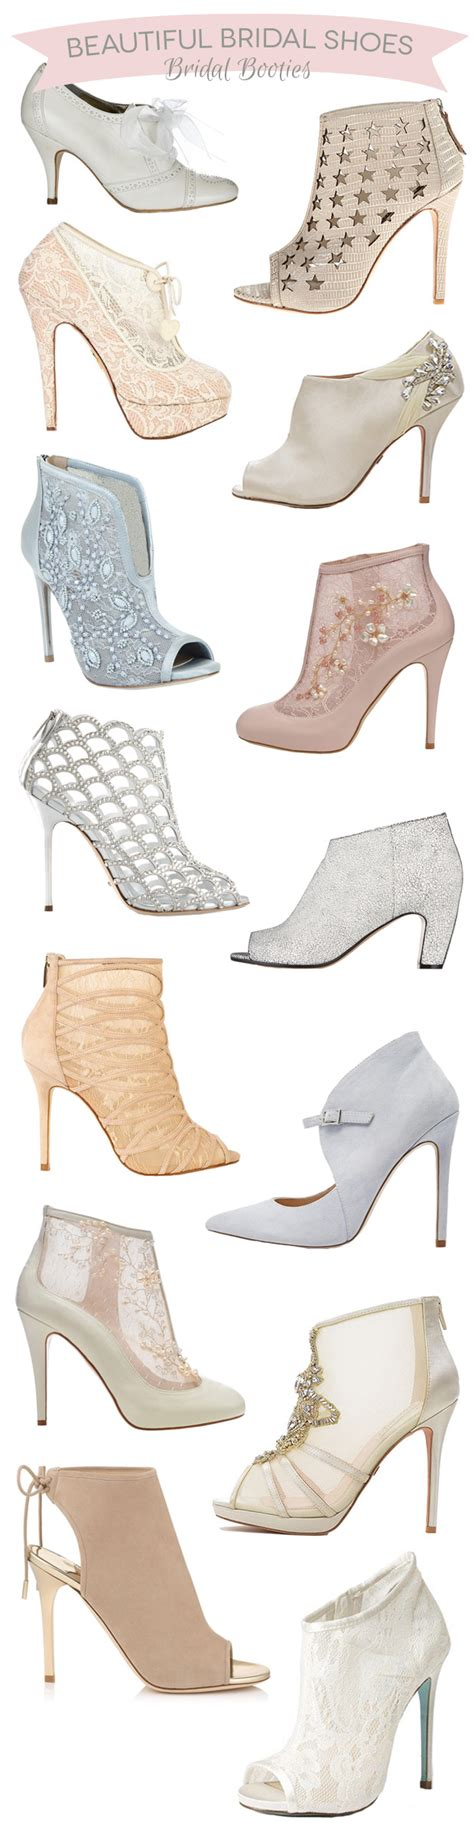 Bridal Bootie Shoes by 14 Bridal Booties The Wedding Shoe Of 2015 Onefabday